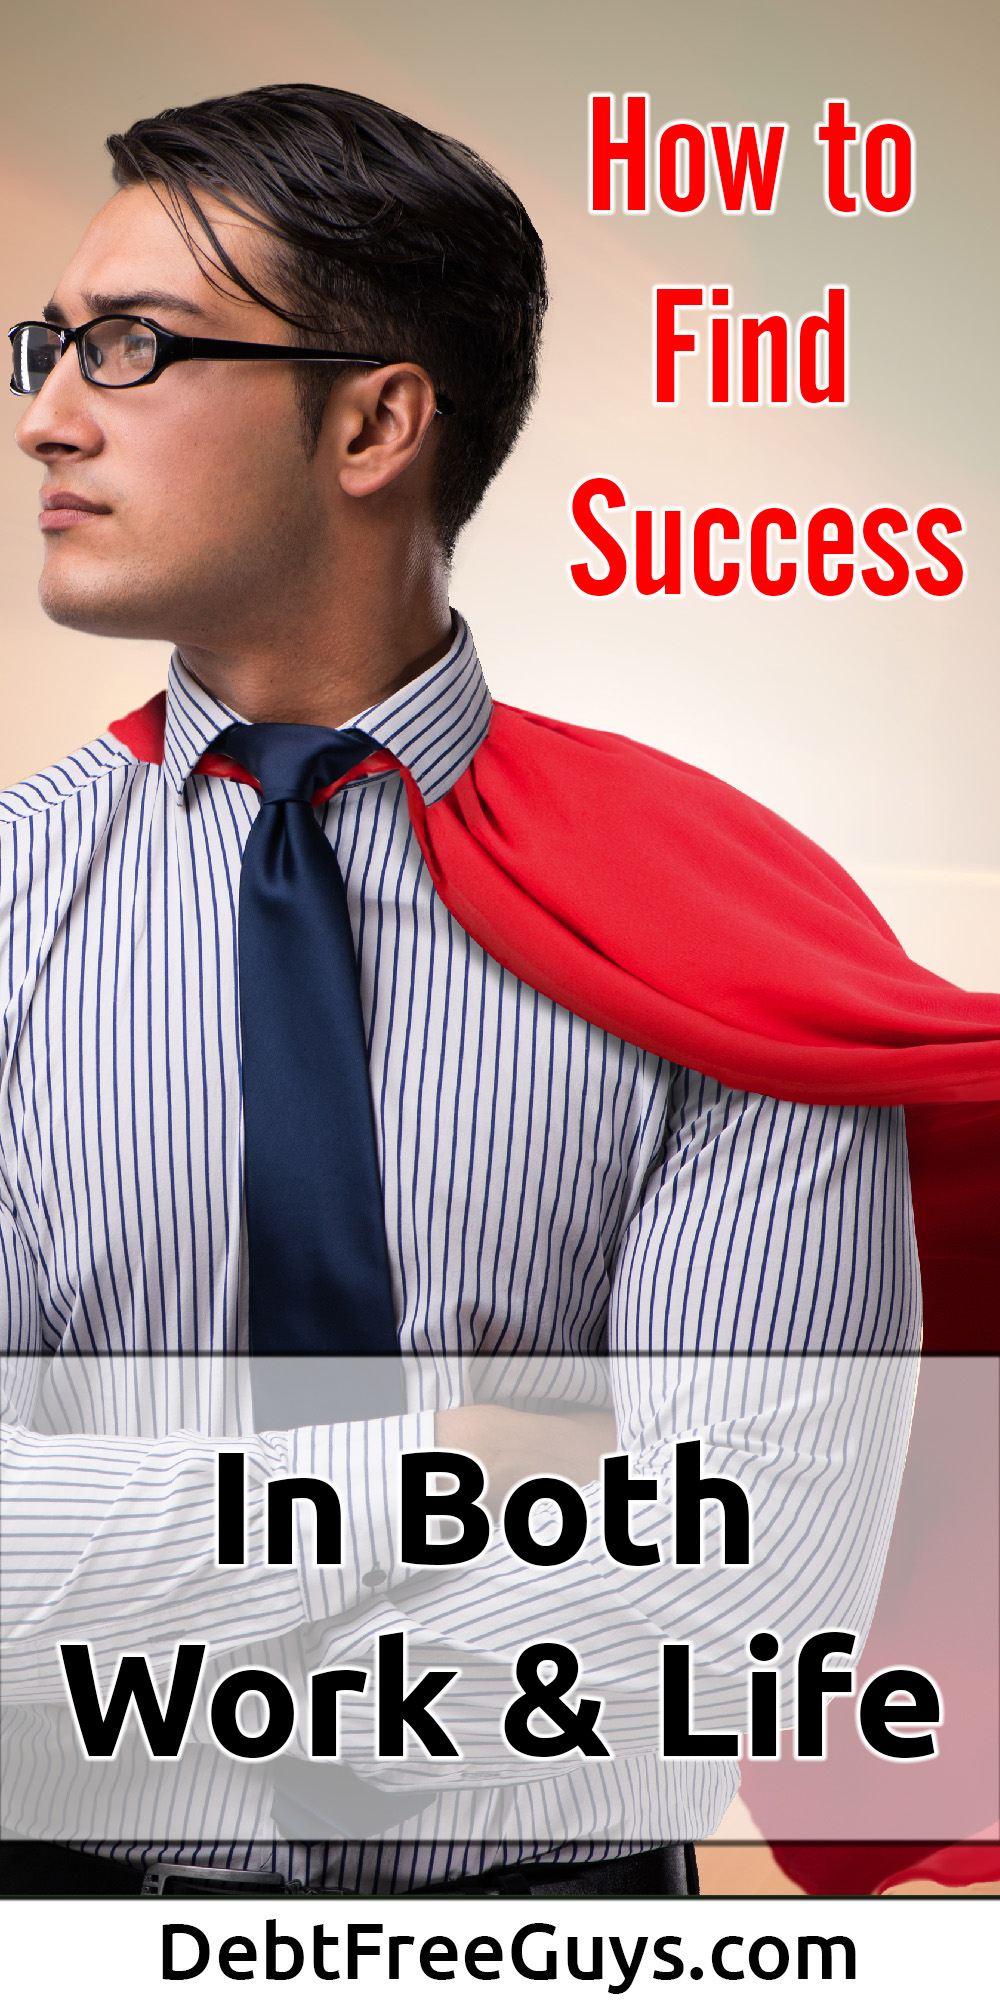 How do you balance a successful life and being a successful leader? It can be hard, but it doesn't have to be. This podcast gives great advice on how to balance and succeed at both home and work.